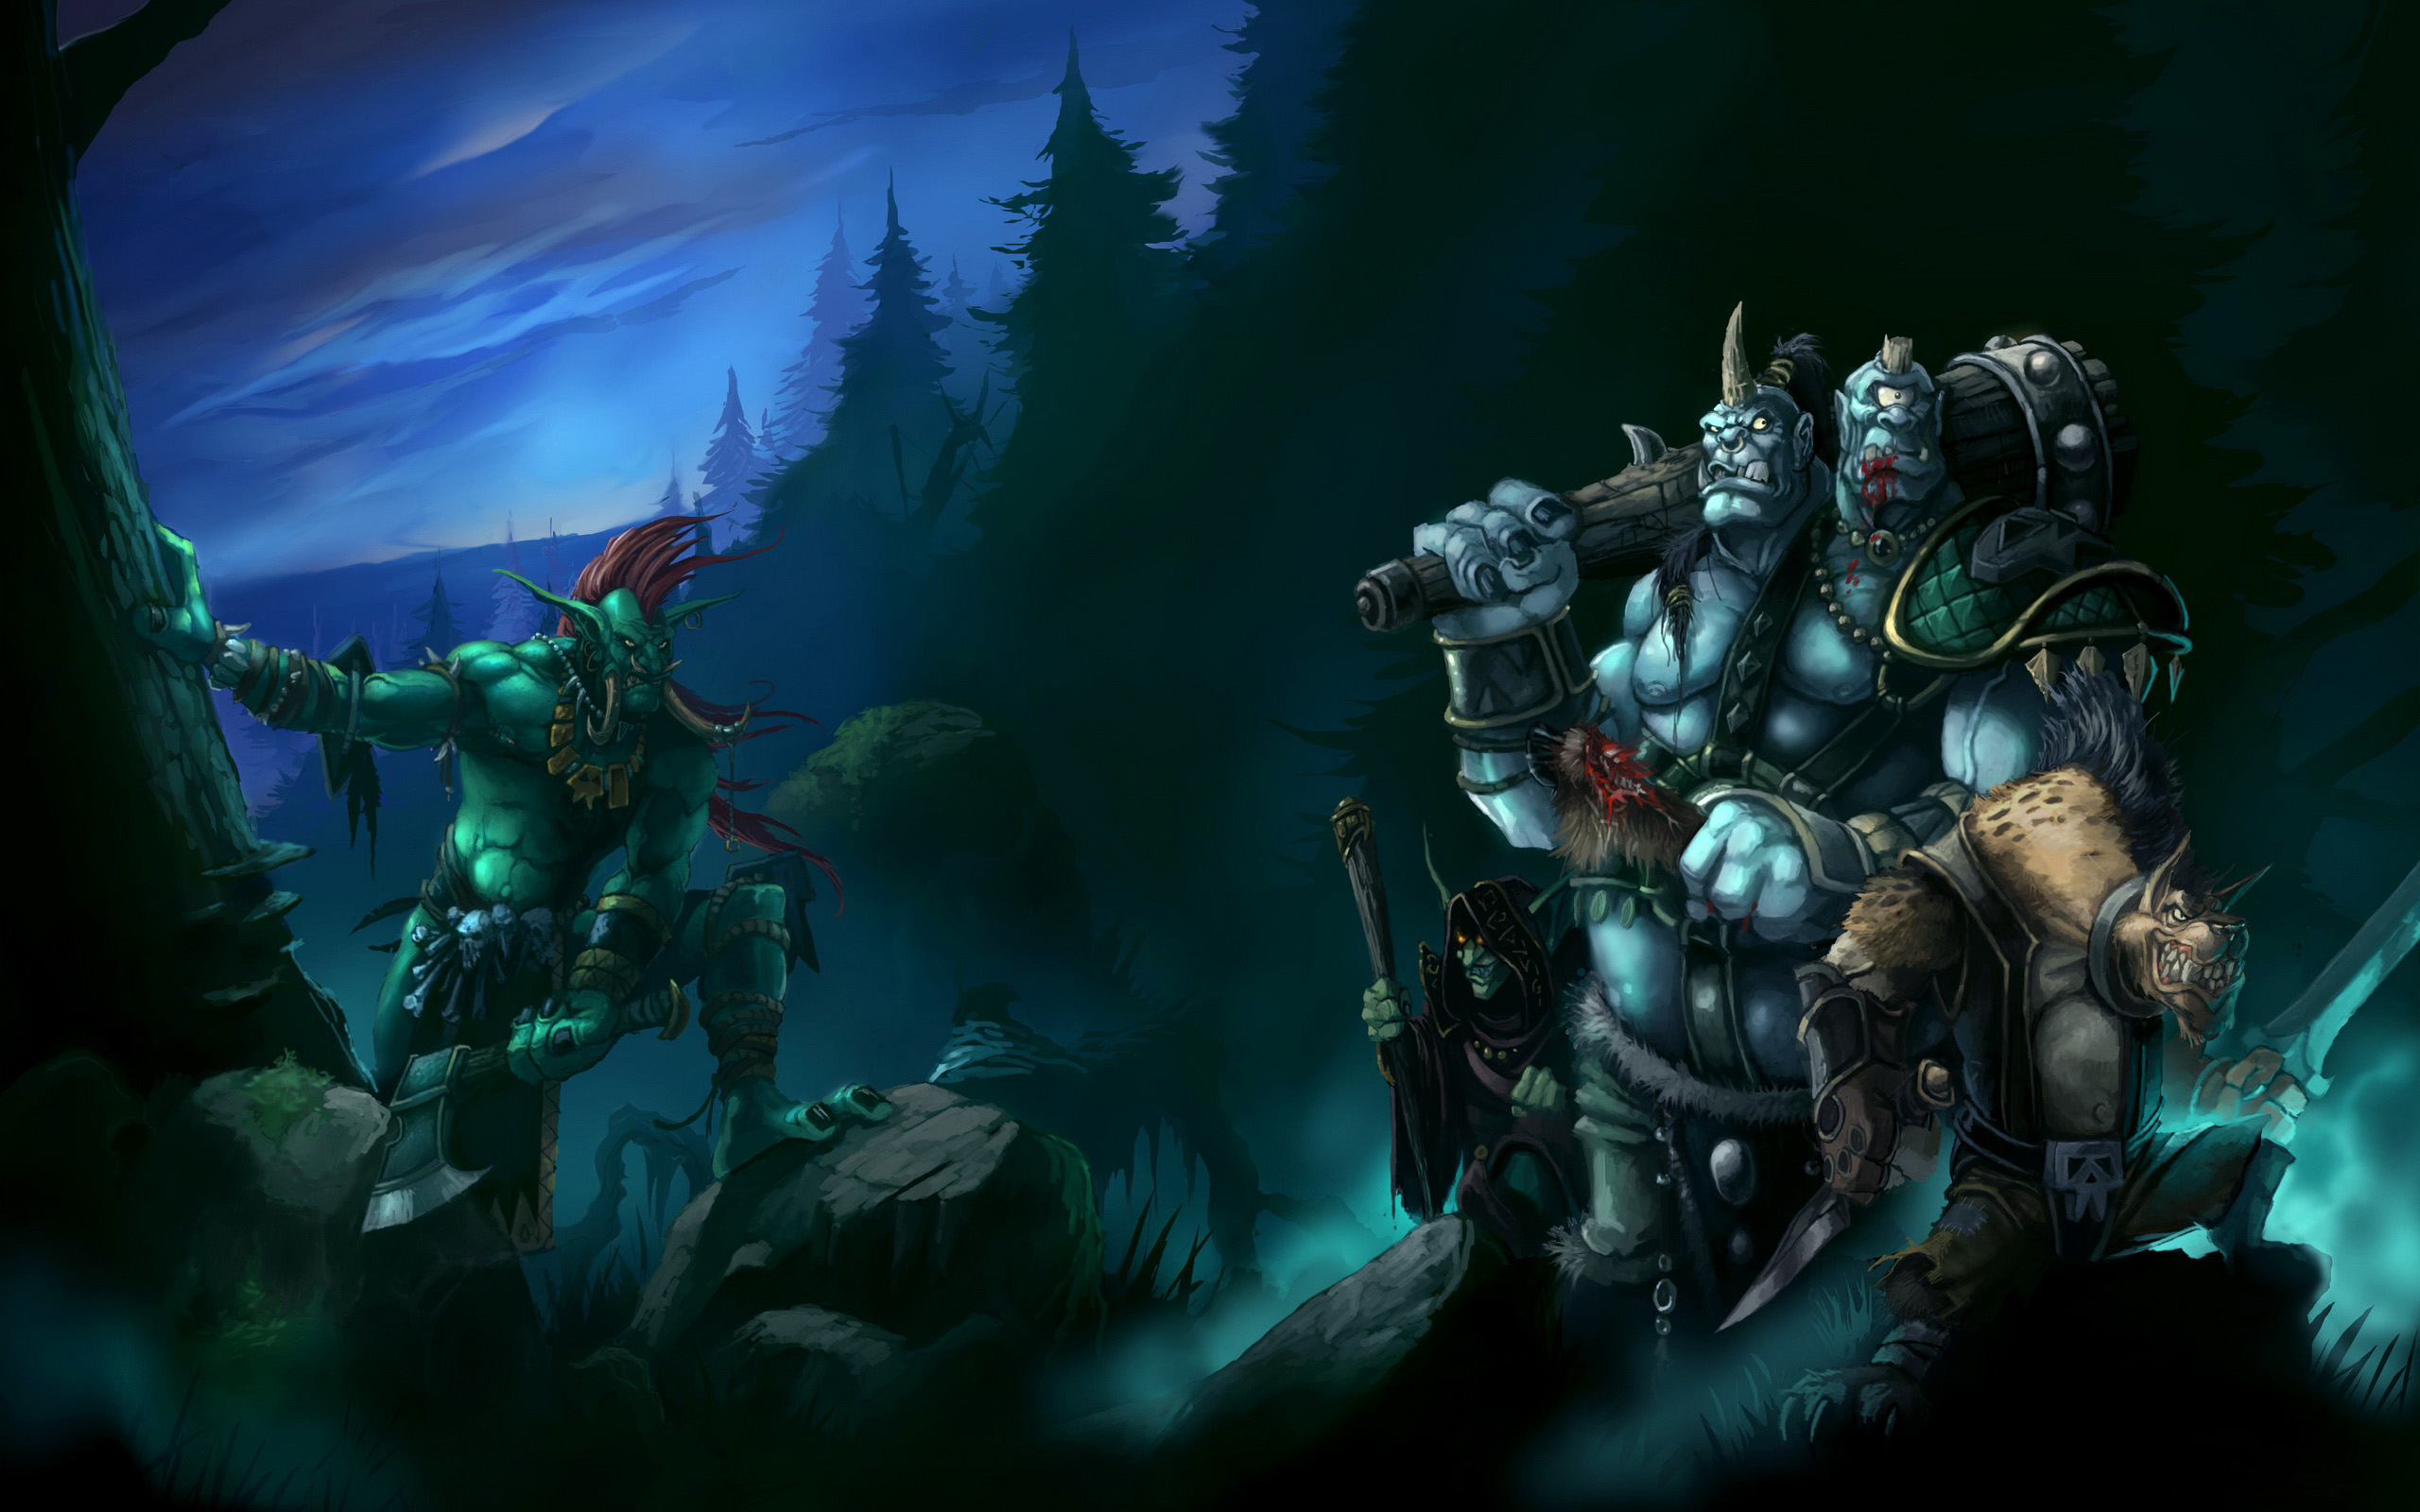 Warcraft Trolls wallpapers and images wallpapers pictures photos